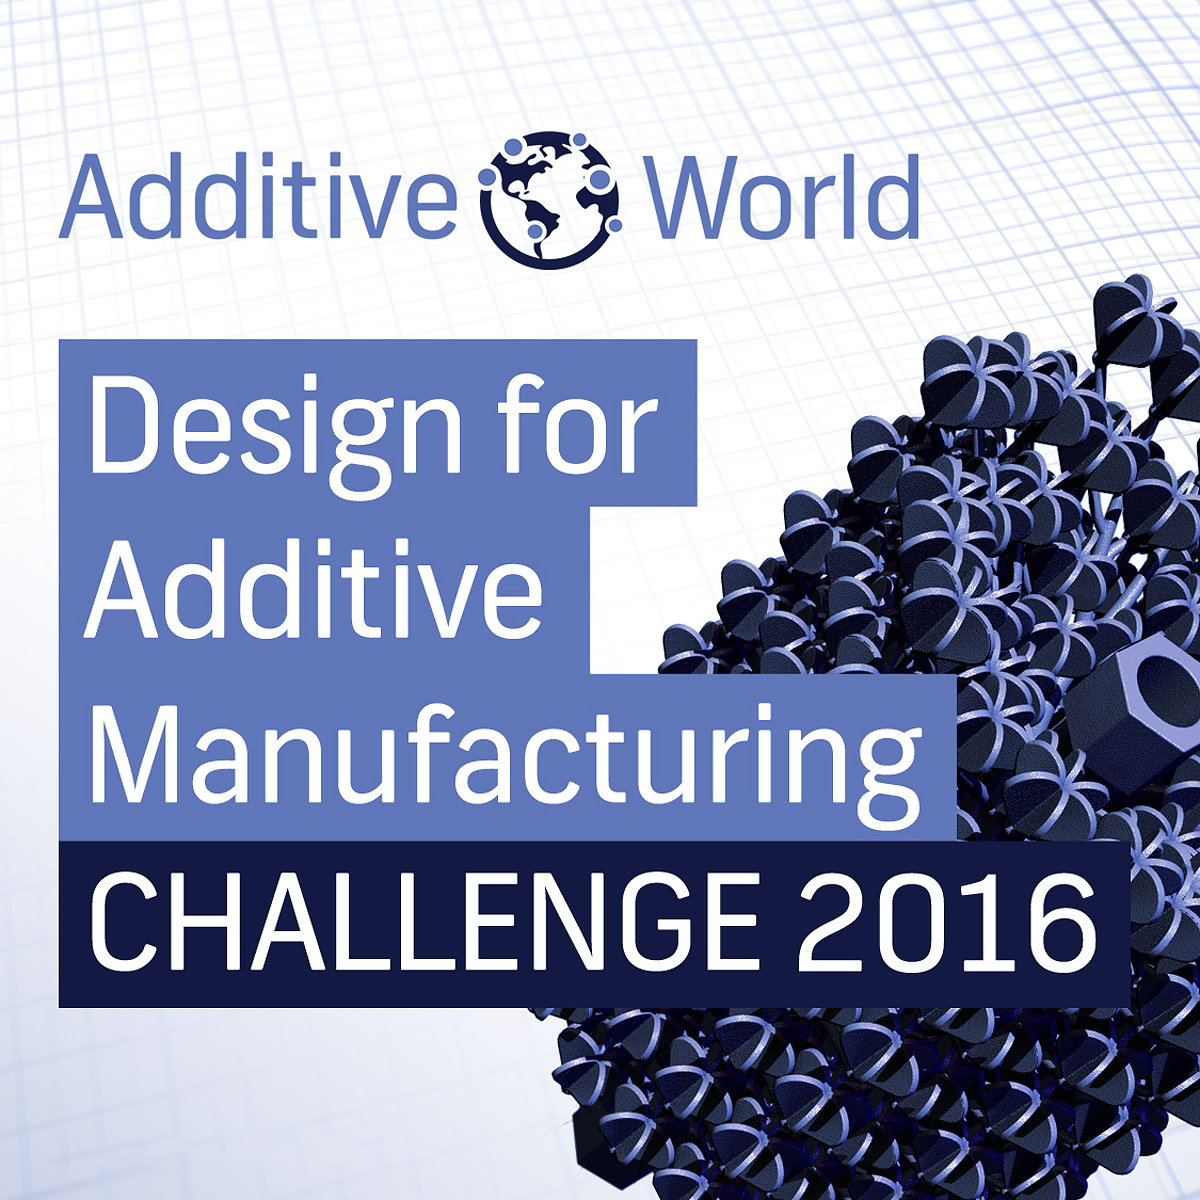 Additive World Design for Additive Manufacturing Challenge 2016